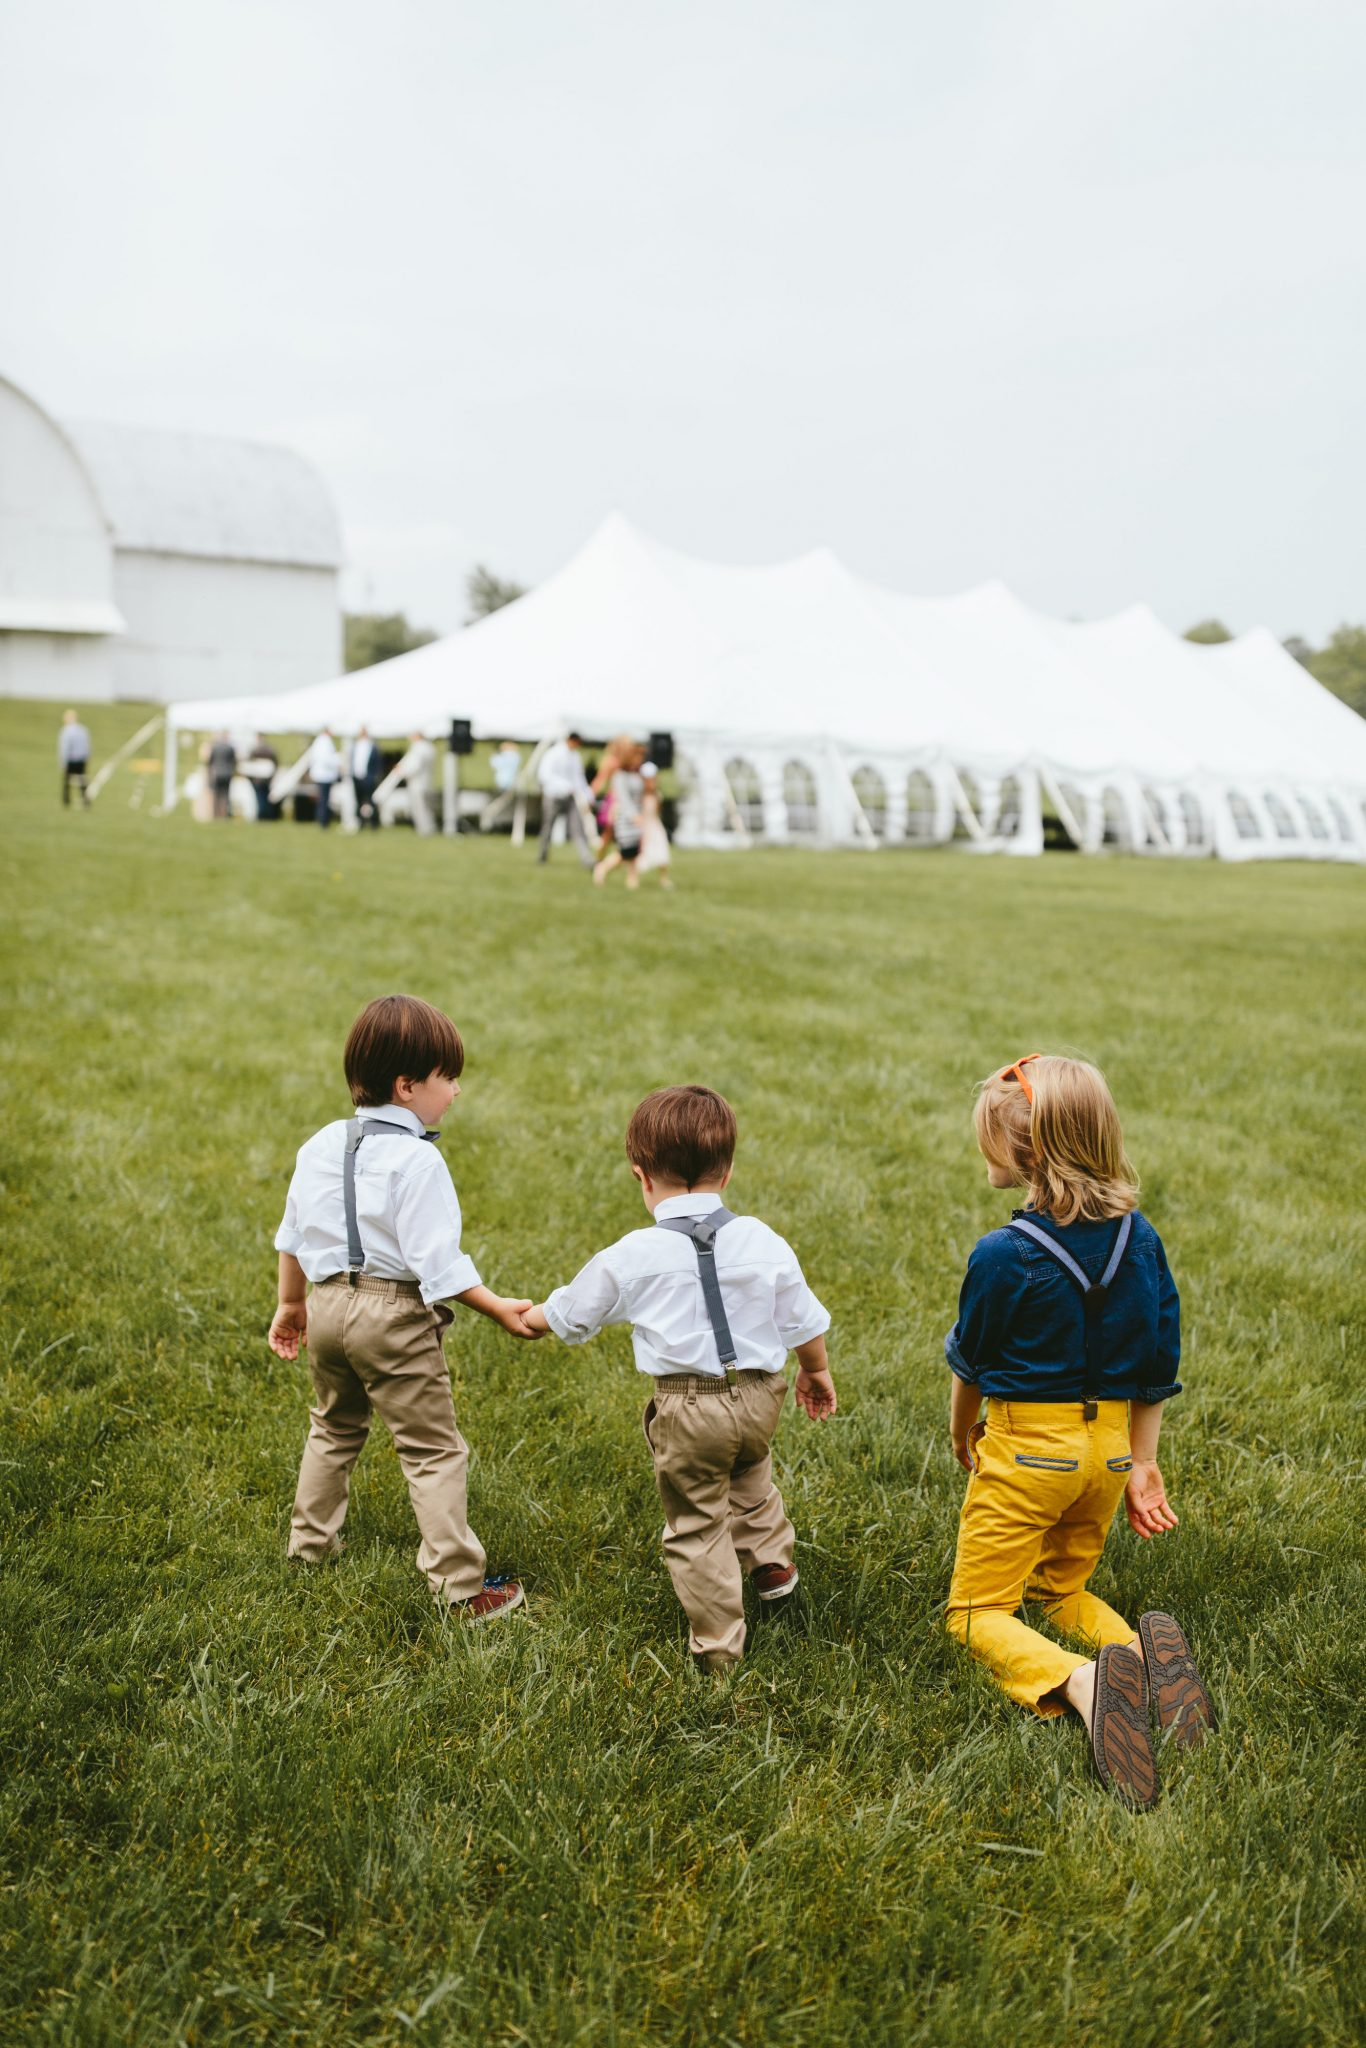 ring bearer, ring bearer outfit suspender, outdoor ceremony inspiration, outdoor wedding photos, barn wedding ceremony, backyard wedding ceremony,philadelphia documentary wedding photographer,brooklyn wedding photography, Brooklyn wedding, Philadelphia wedding photographer, Philadelphia wedding, Brooklyn new york photographer, unique wedding inspiration, fun wedding photos, romantic wedding, destination wedding photographer, wedding photography inspiration,barn wedding ideas, barn wedding, unique barn wedding inspiration